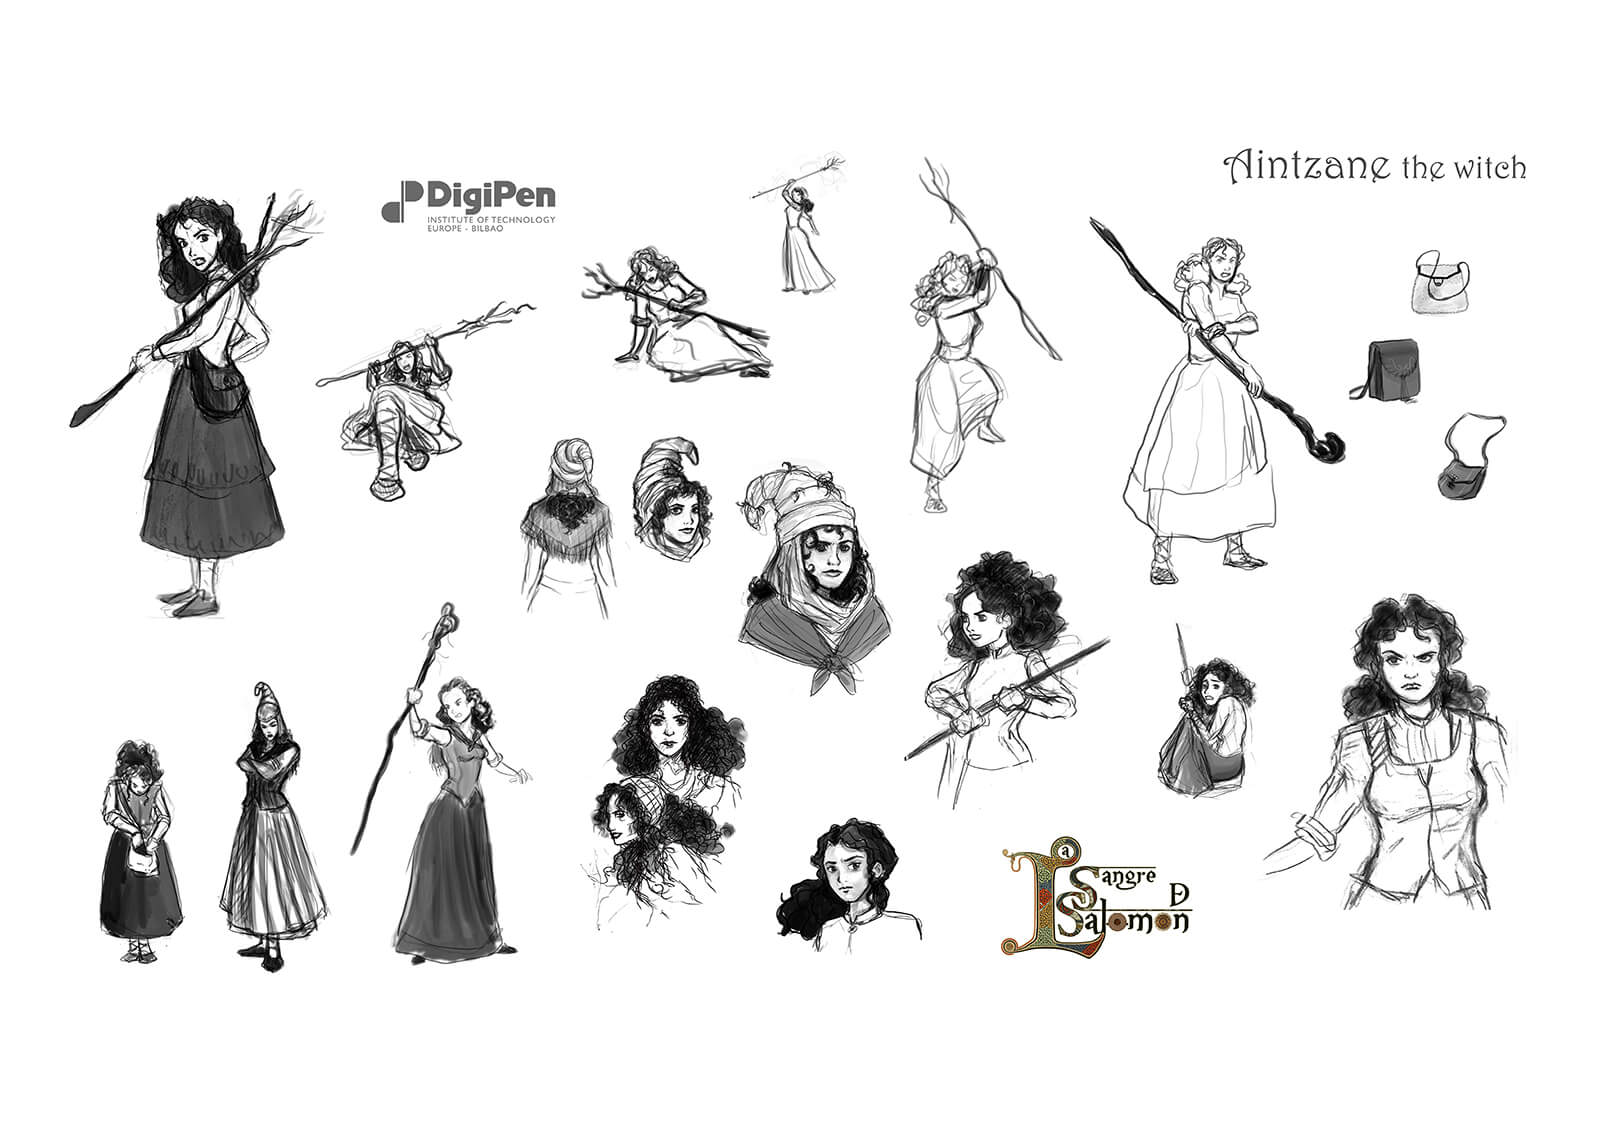 Concept drawings of Aintzane The Witch from La Sangre de Salomon